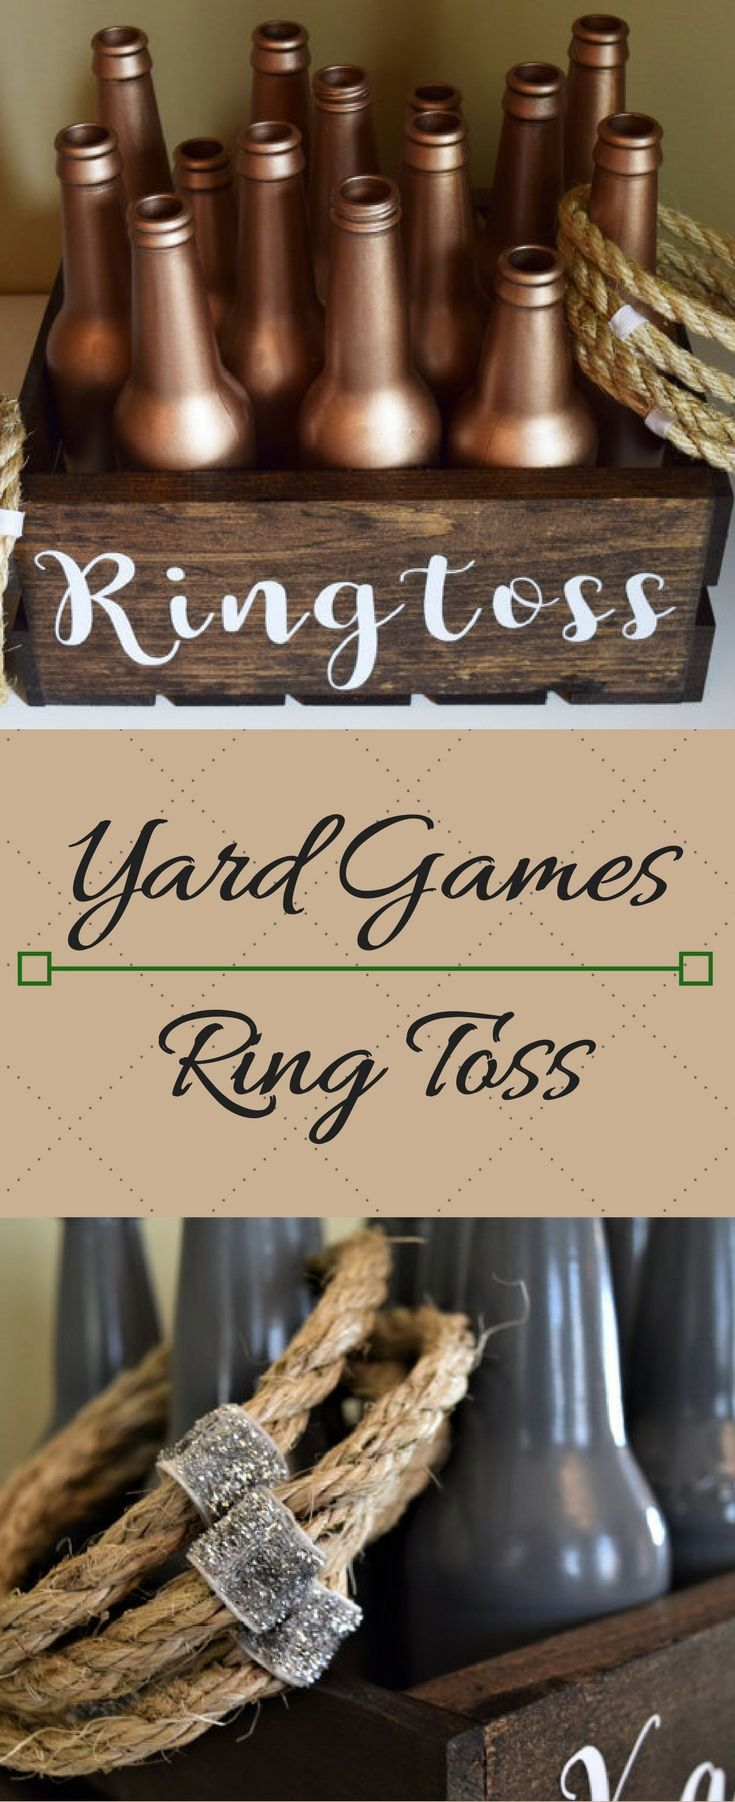 Perfect for an outdoor wedding, graduation party, barbeque, camping trip, or any day that ends in Y. #Yardgames #ringToss #Backyard #graduationparty #weddings #bbq #camping #Ad